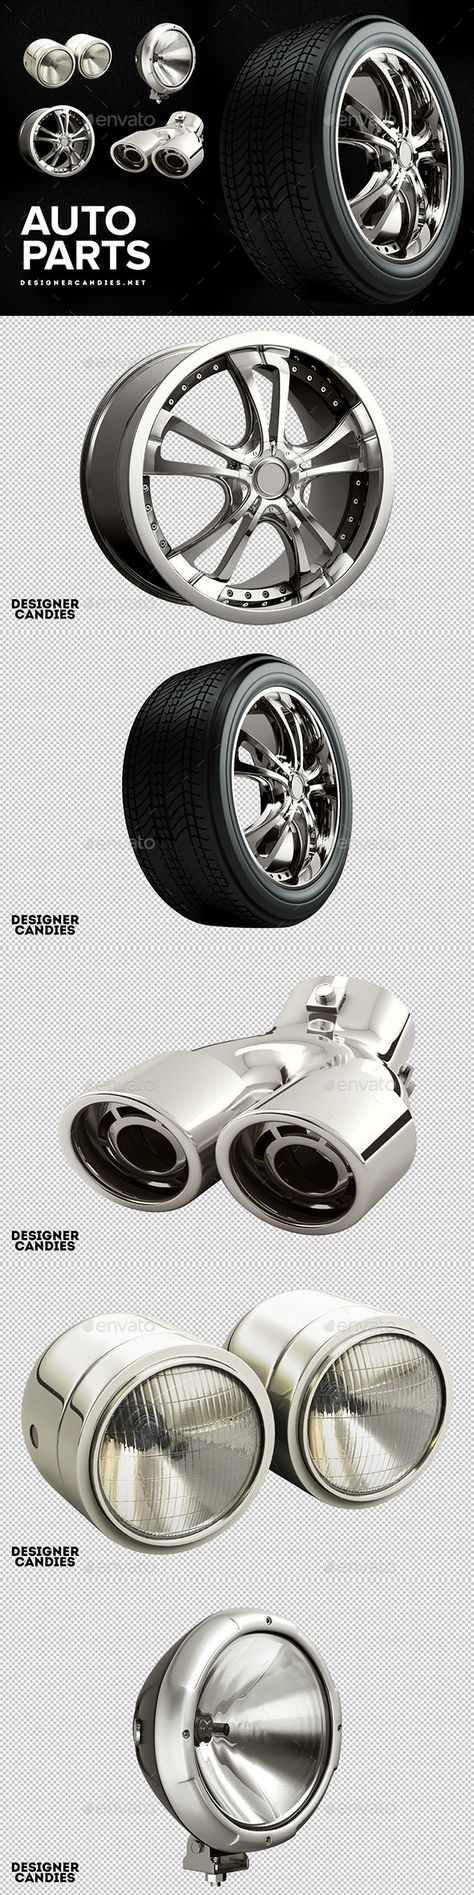 3D Graphics & Renders - Auto Parts Pack